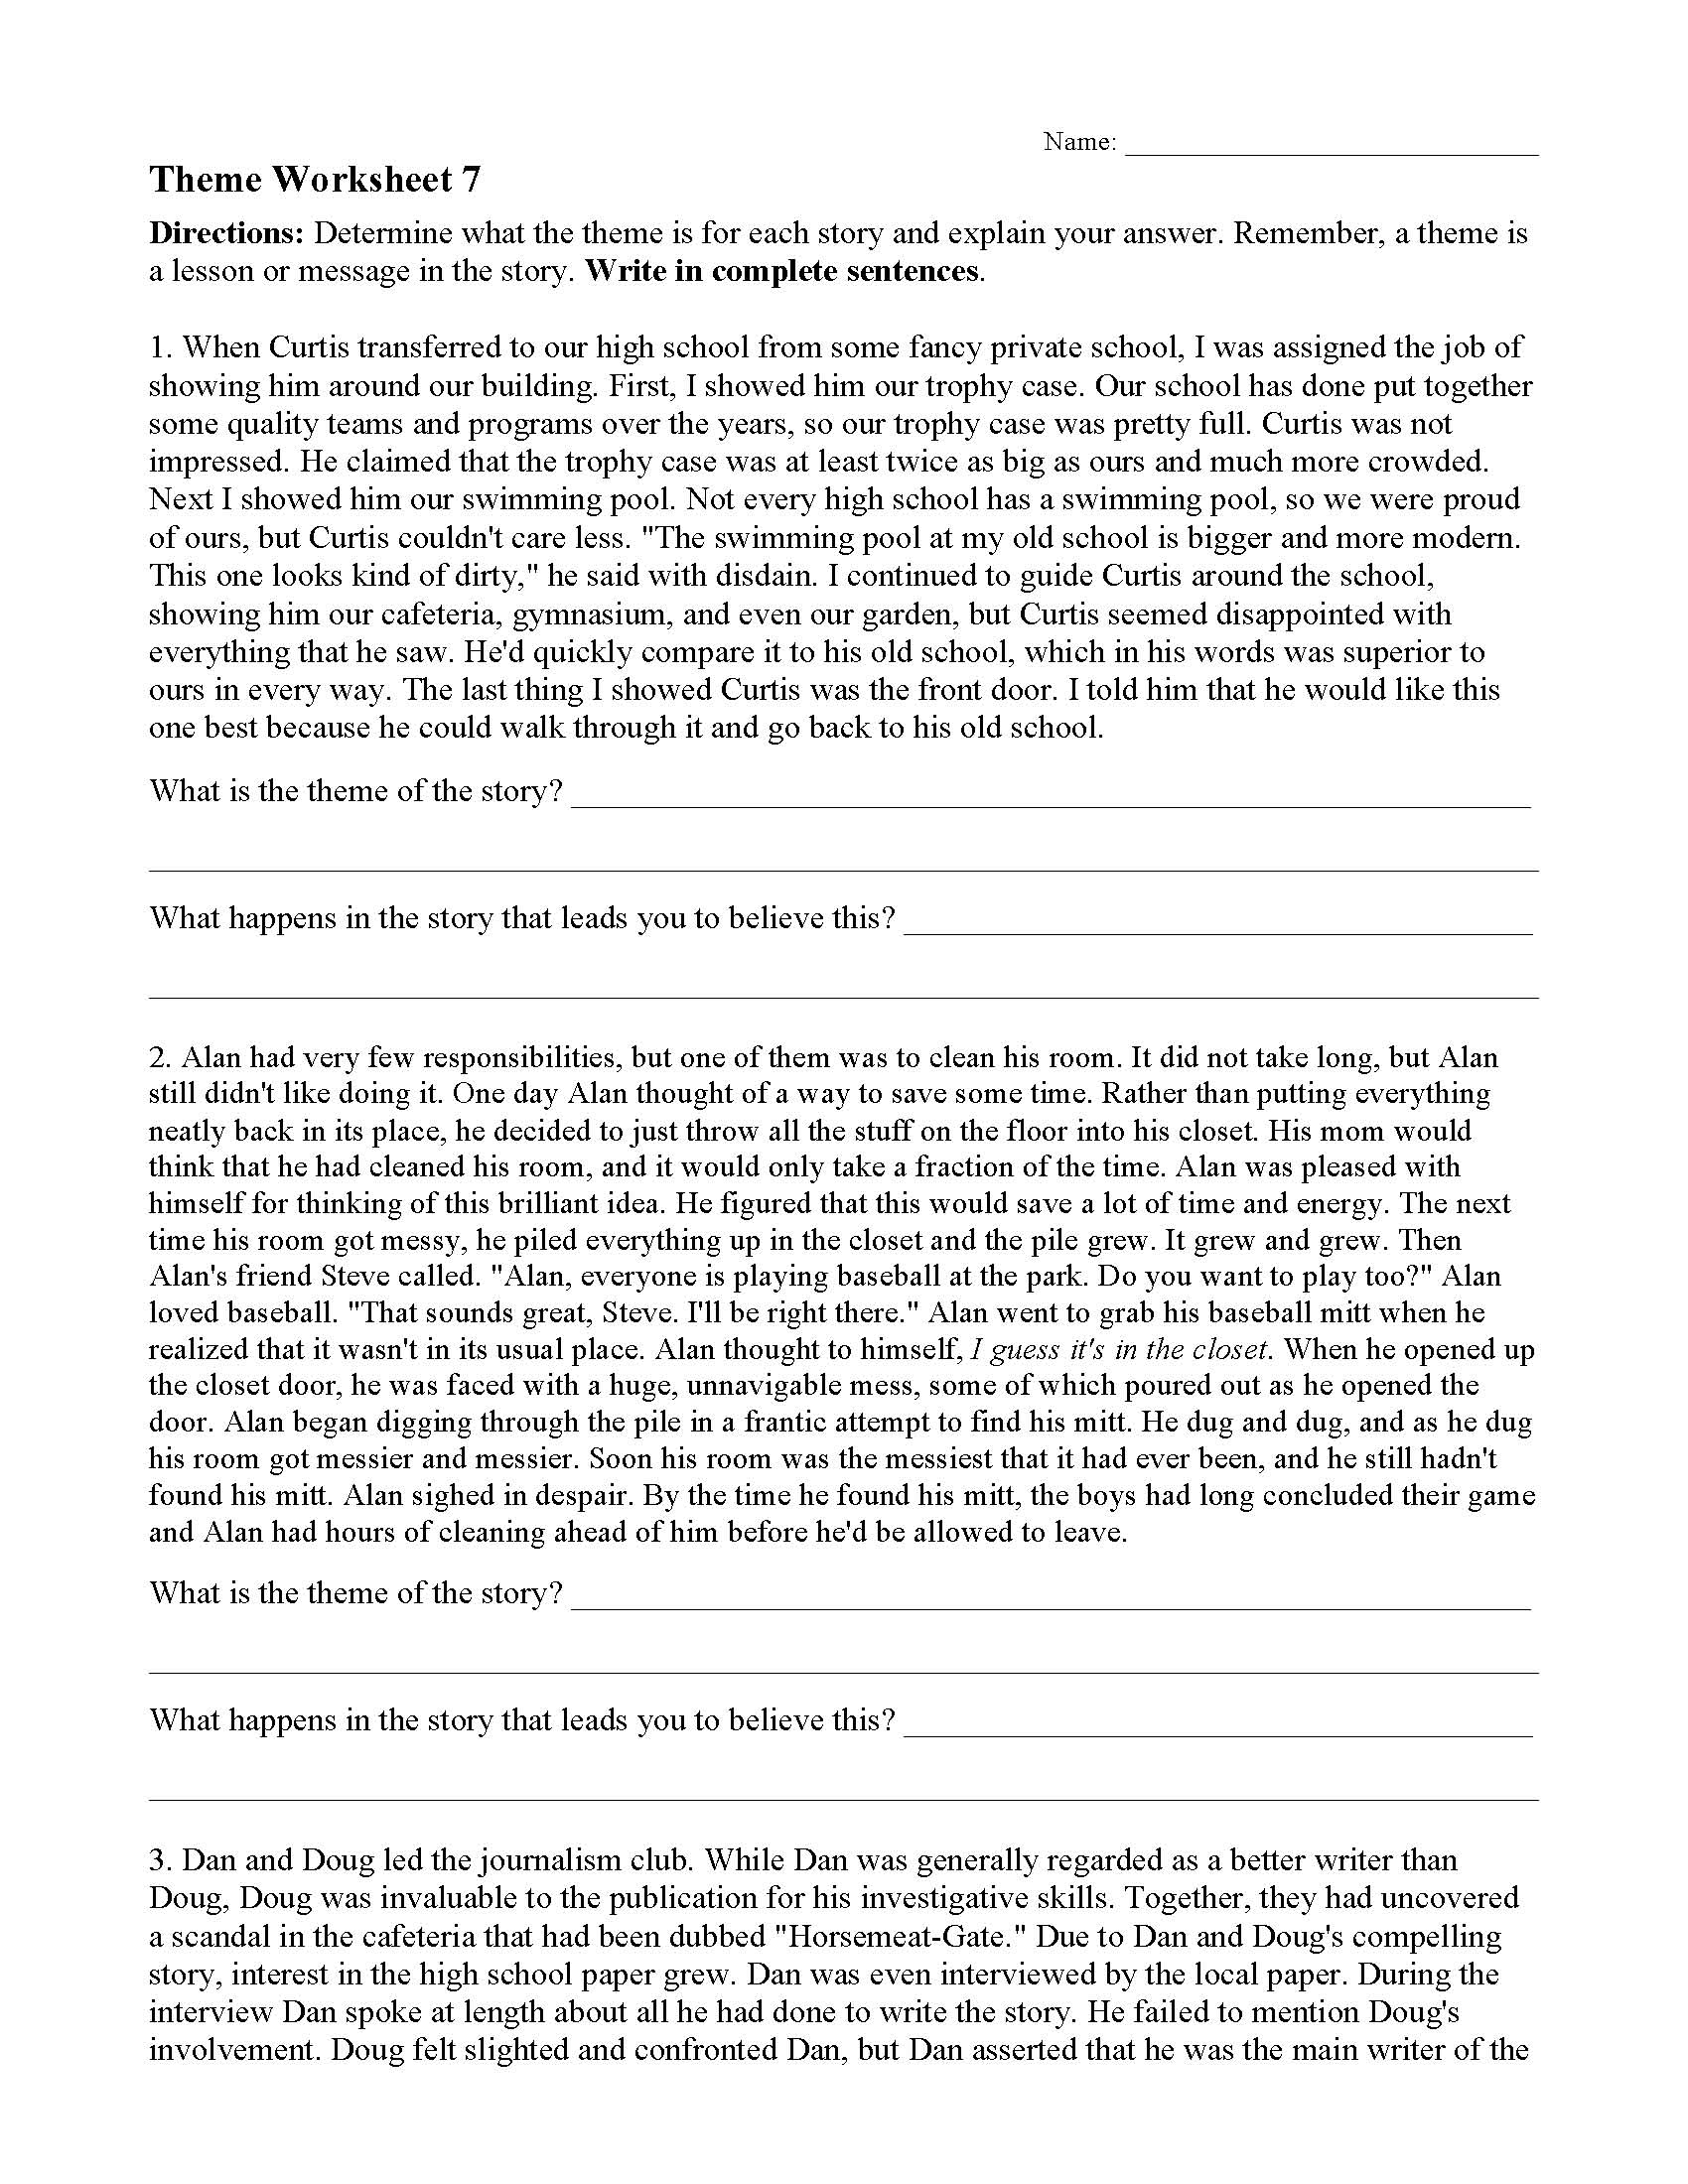 Theme Or Author's Message Worksheets   Ereading Worksheets